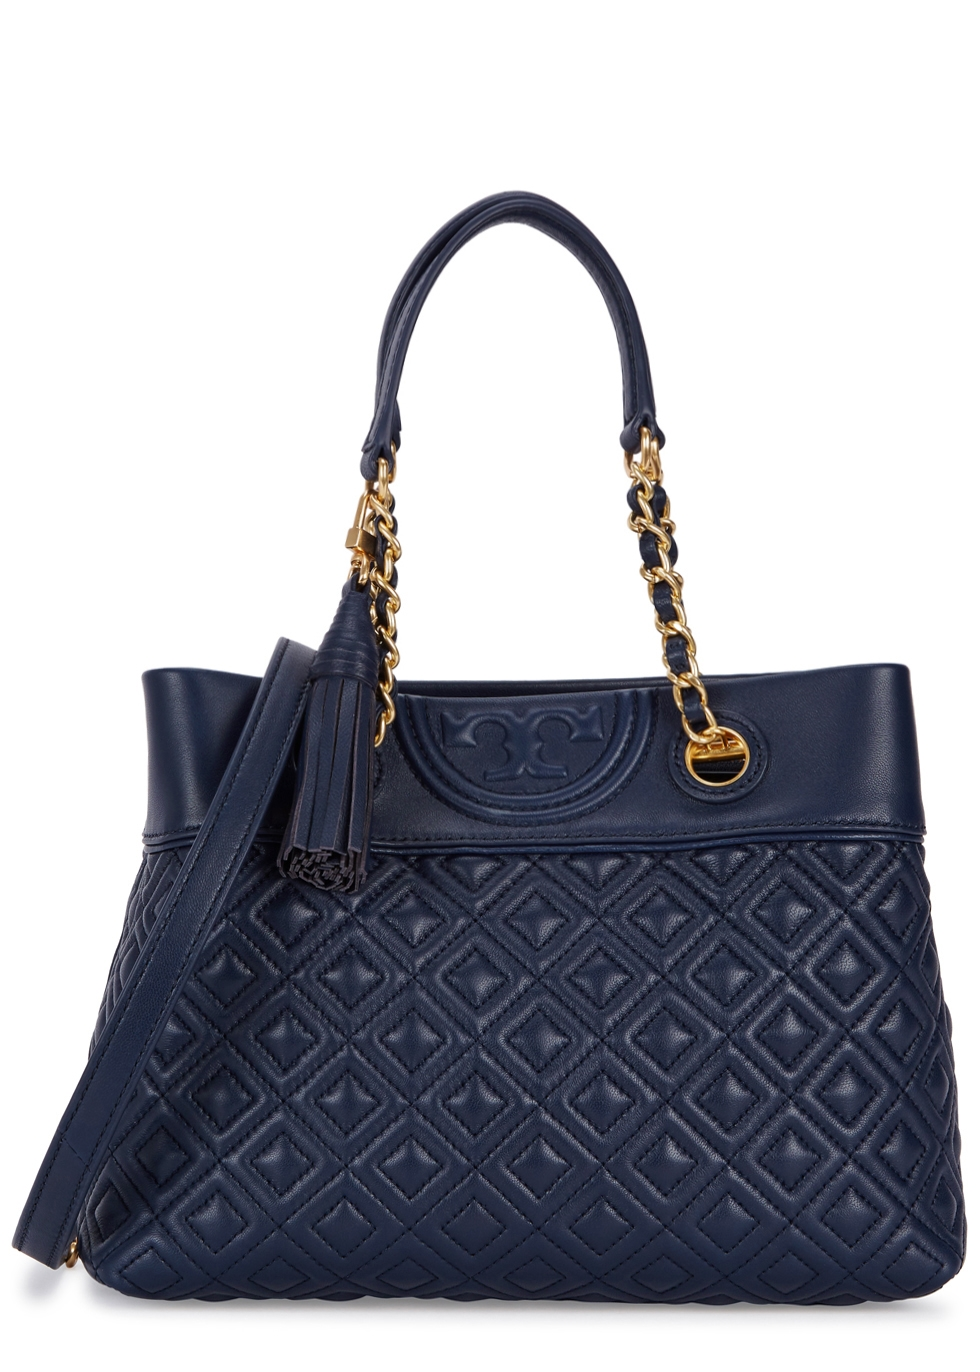 TORY BURCH FLEMING SMALL NAVY LEATHER TOTE